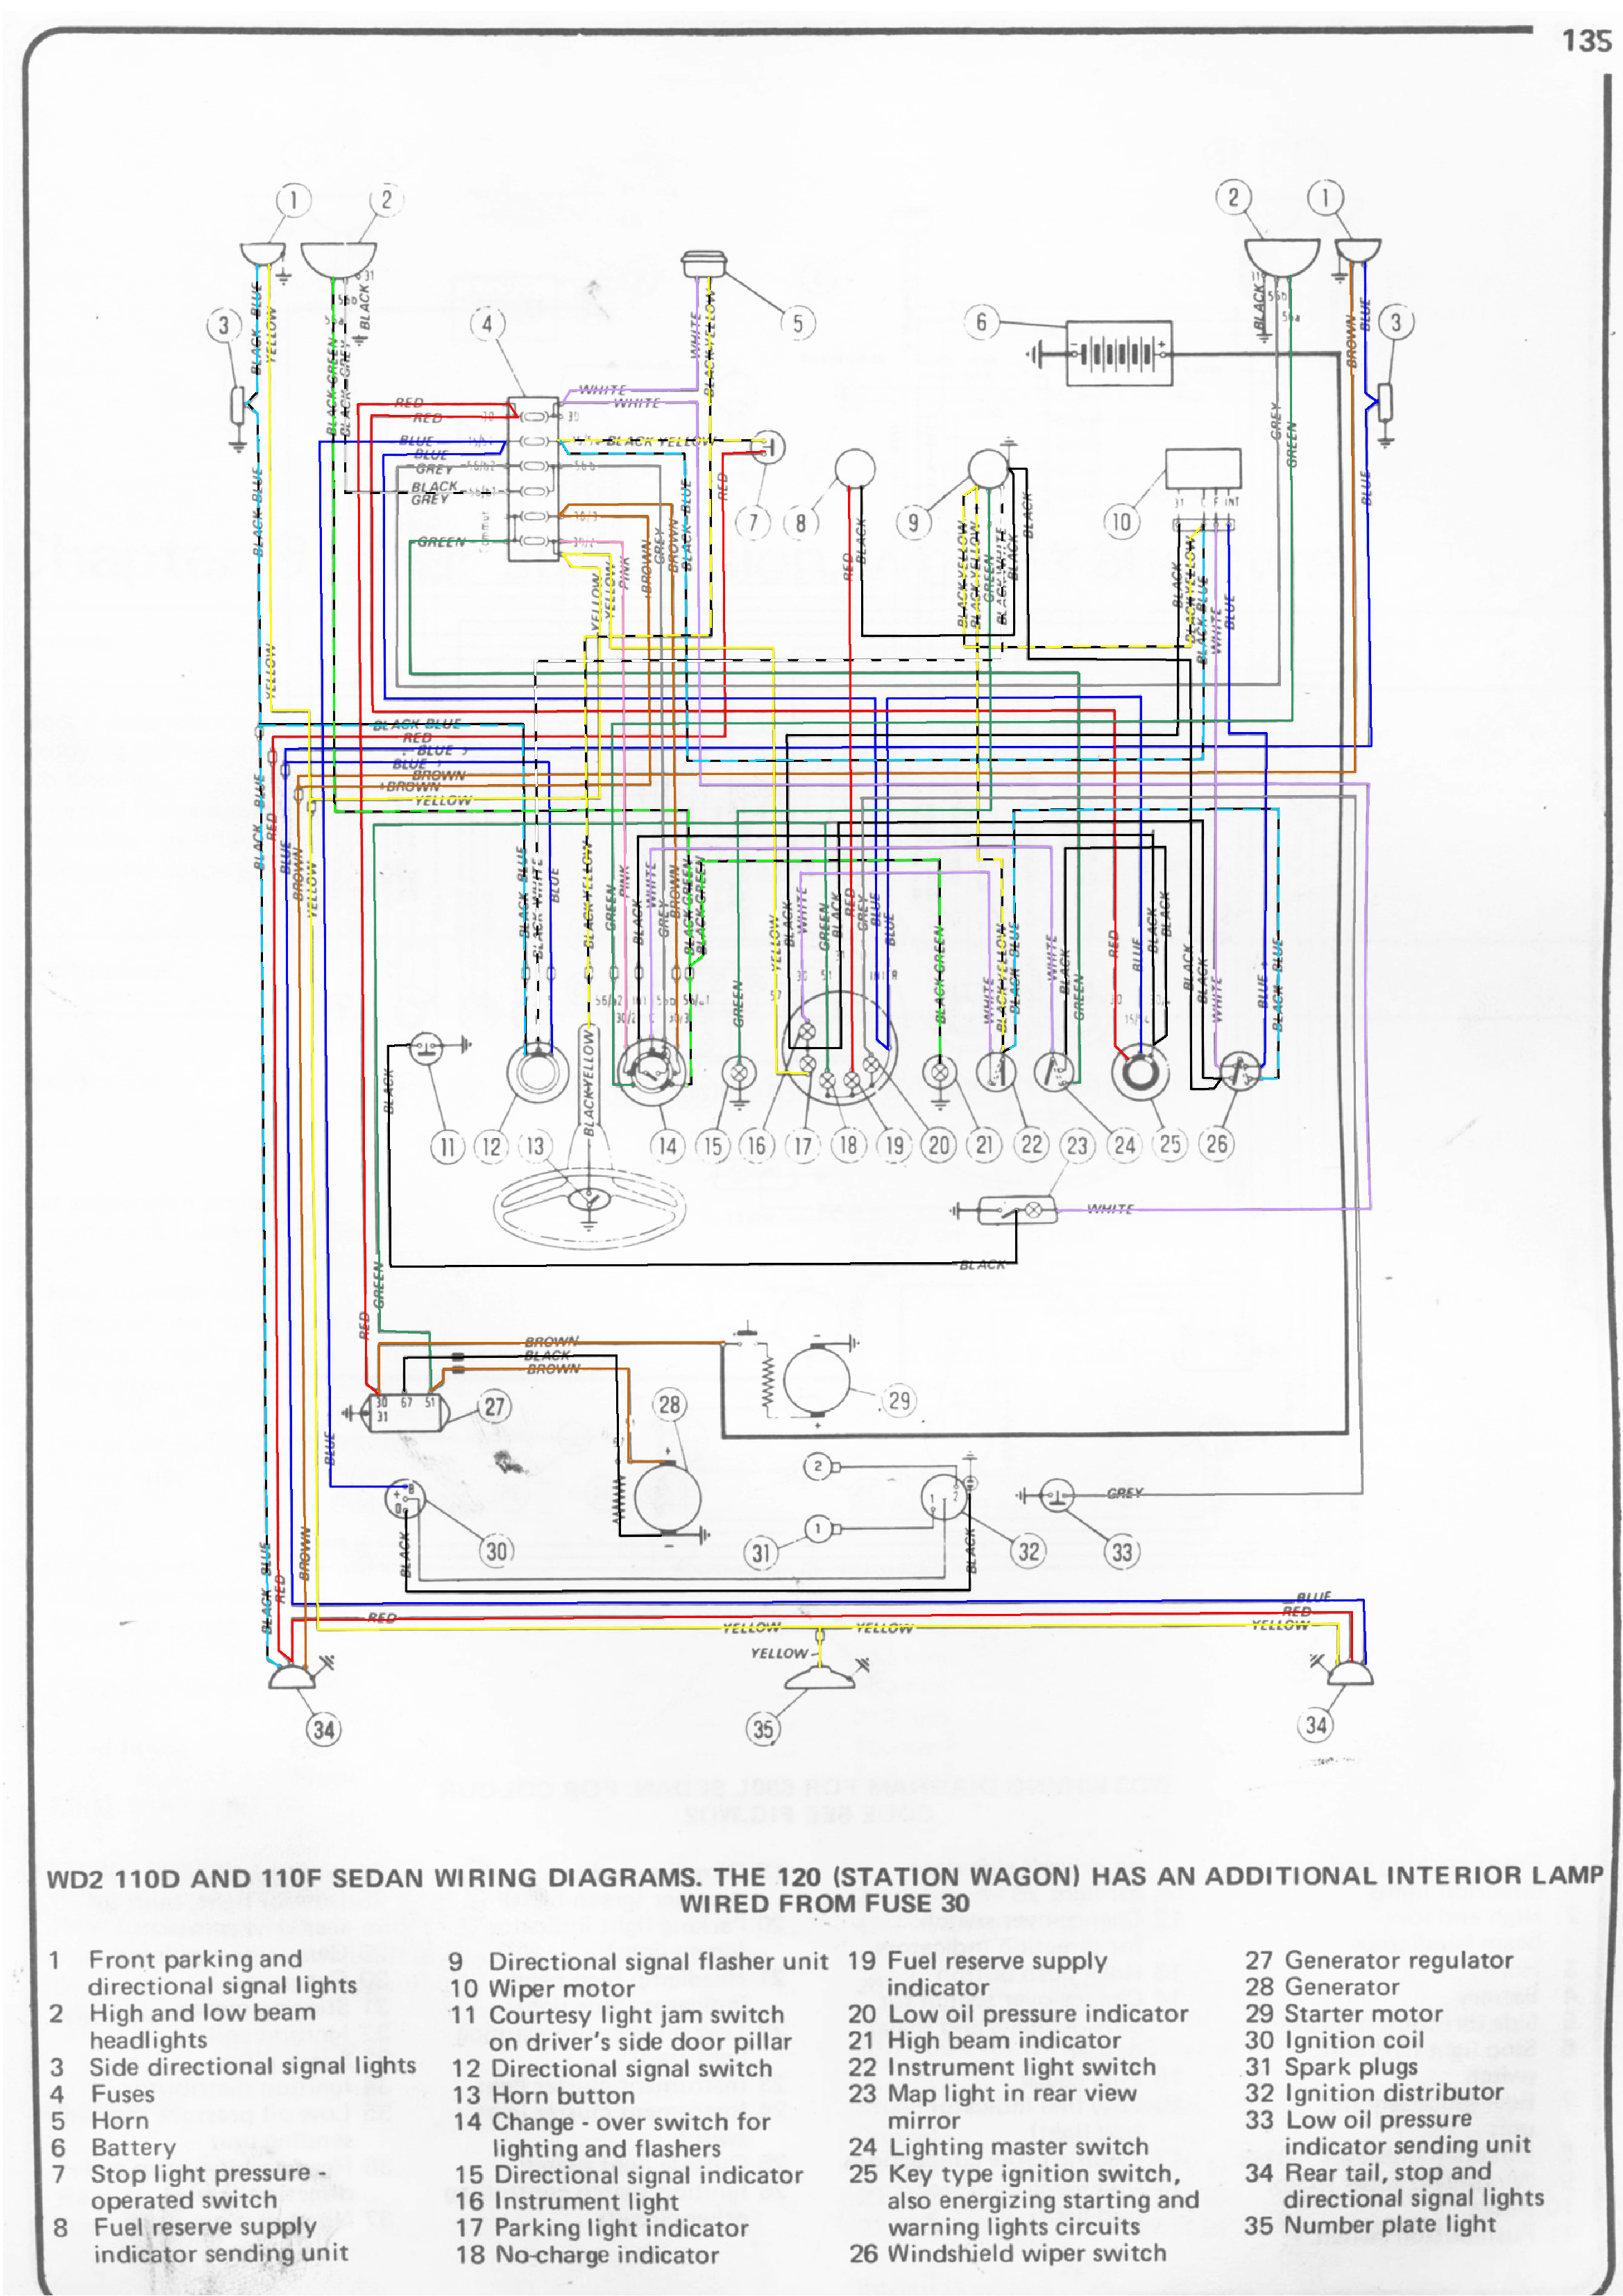 Fiat Wiring Diagram Schematic 2019 1983 124 Electrical Another Blog About U2022 Rh Ok2 Infoservice Ru Punto Panda